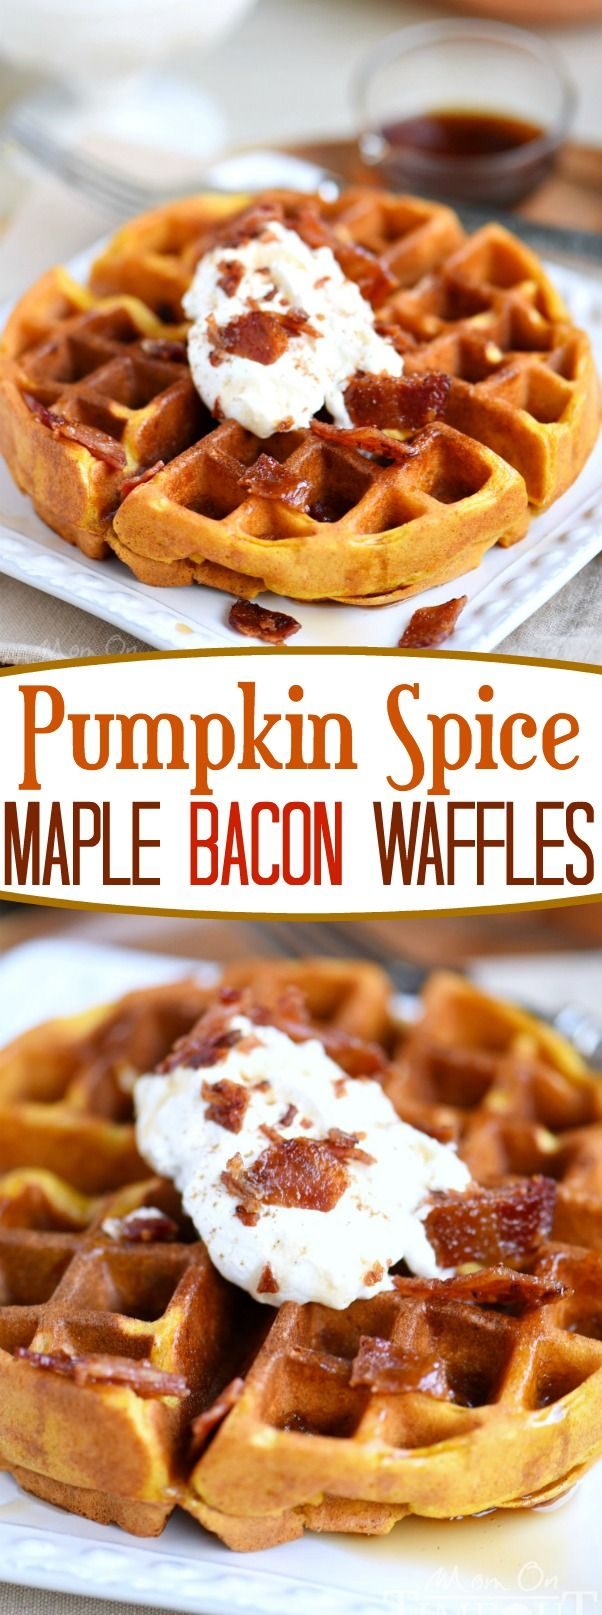 These Pumpkin Spice Maple Bacon Waffles are the perfect way to celebrate the most important meal of the day! Great for the holidays and all fall long! You're going to love the spiced maple bacon that's inside each waffle - so good! // Mom On Timeout